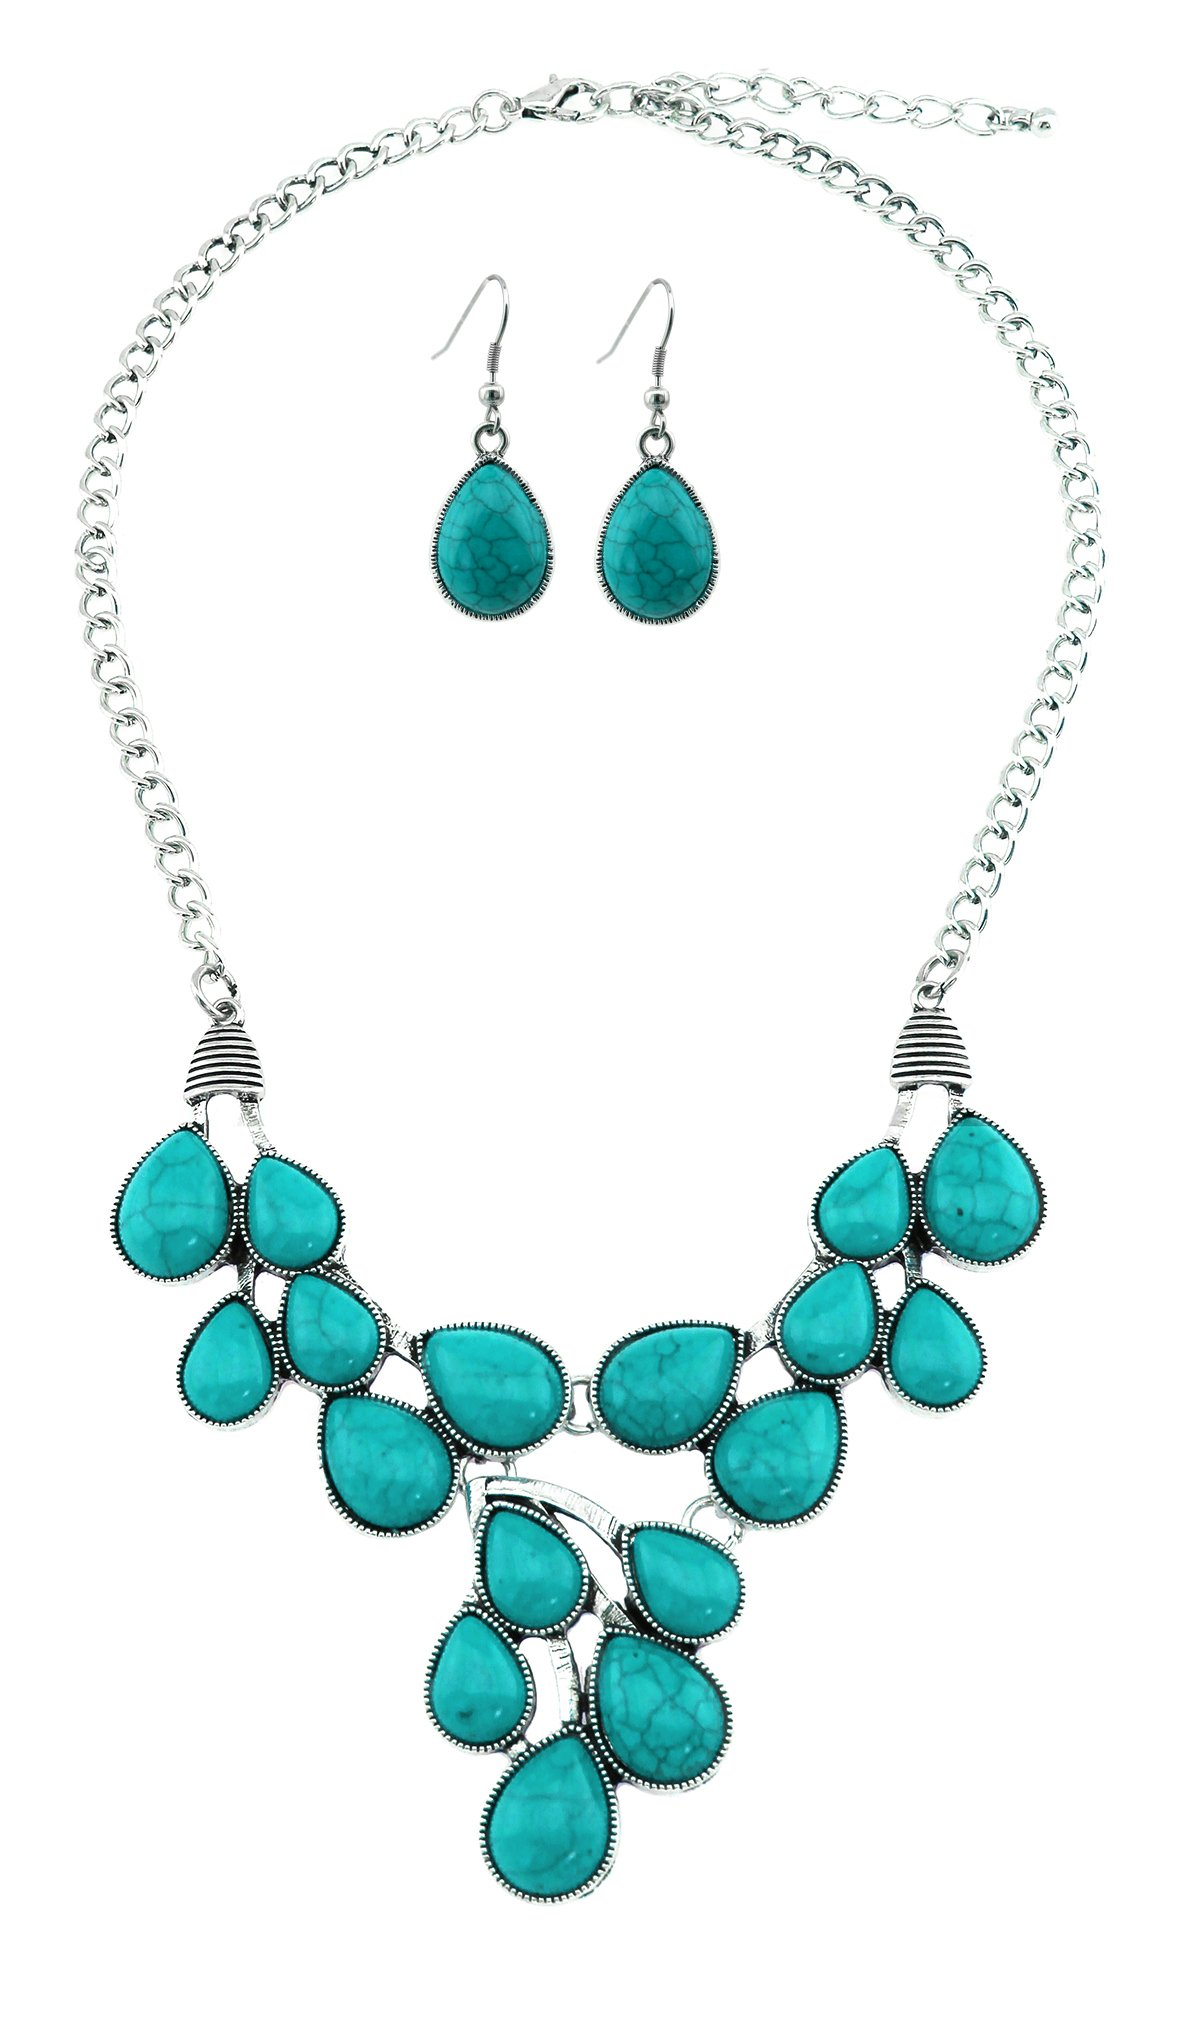 Turquoise Teardrop Cabochon Bib Necklace With Matching Earrings